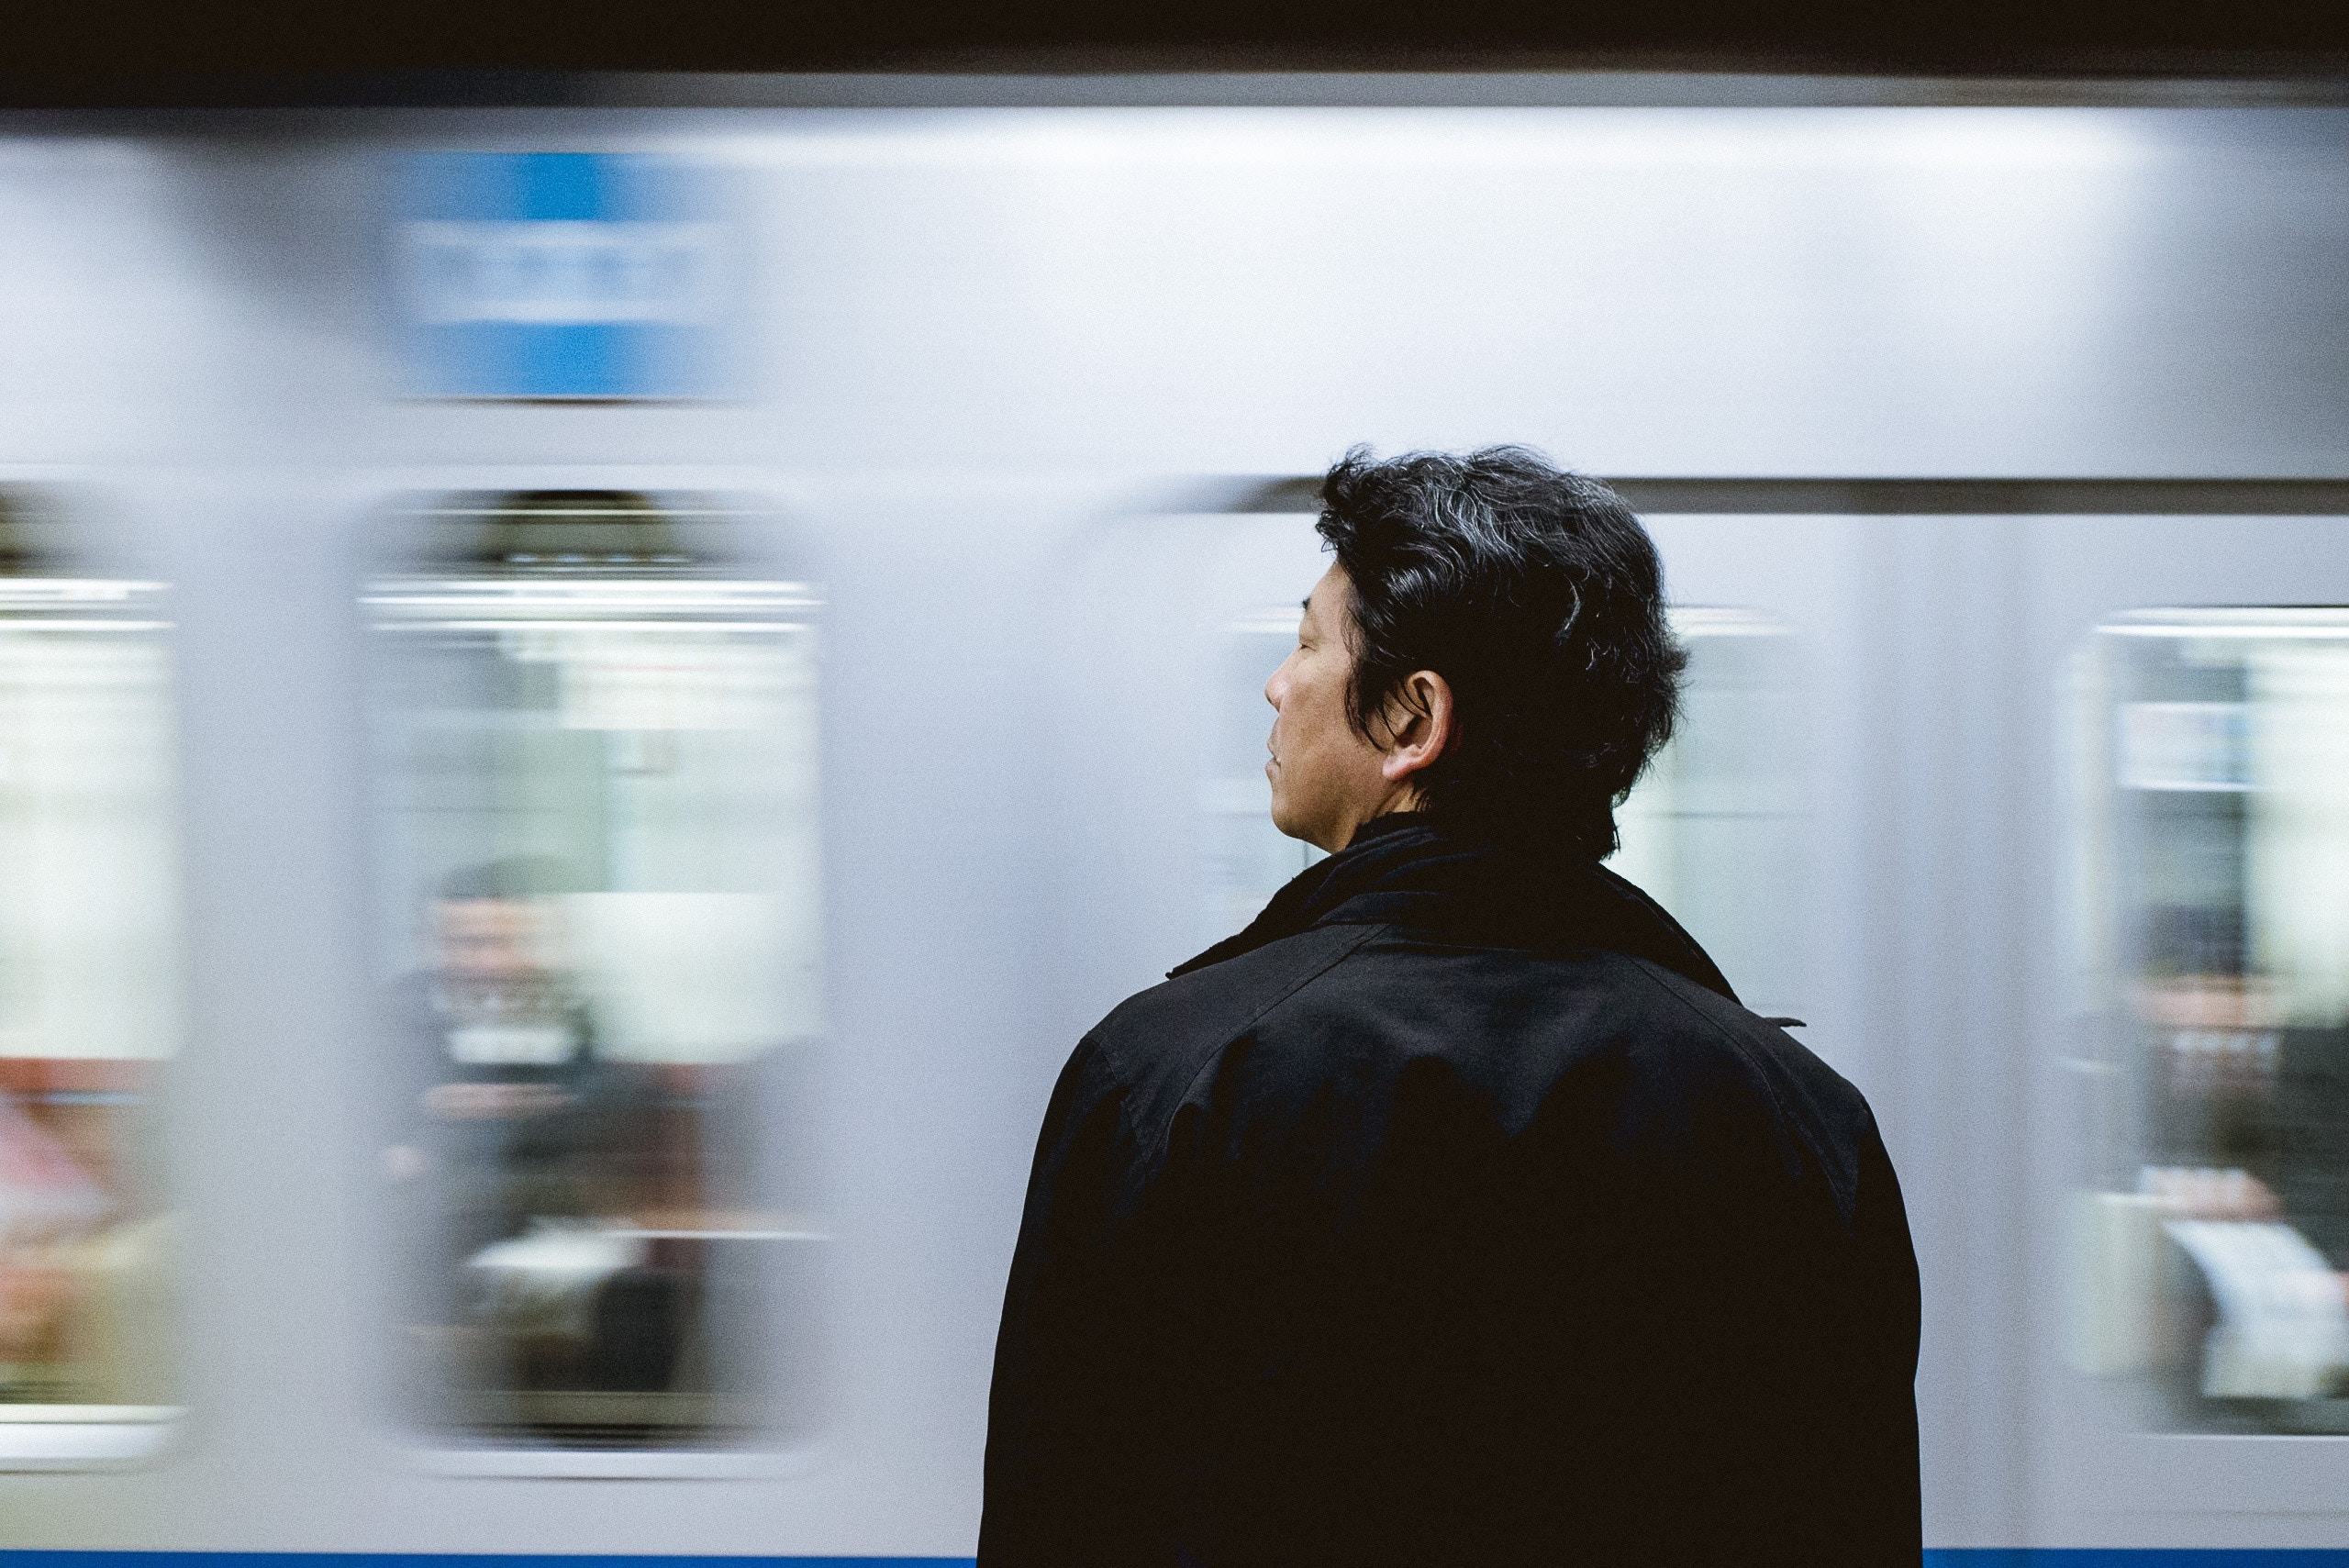 Image of a lone male standing by a fast moving train.